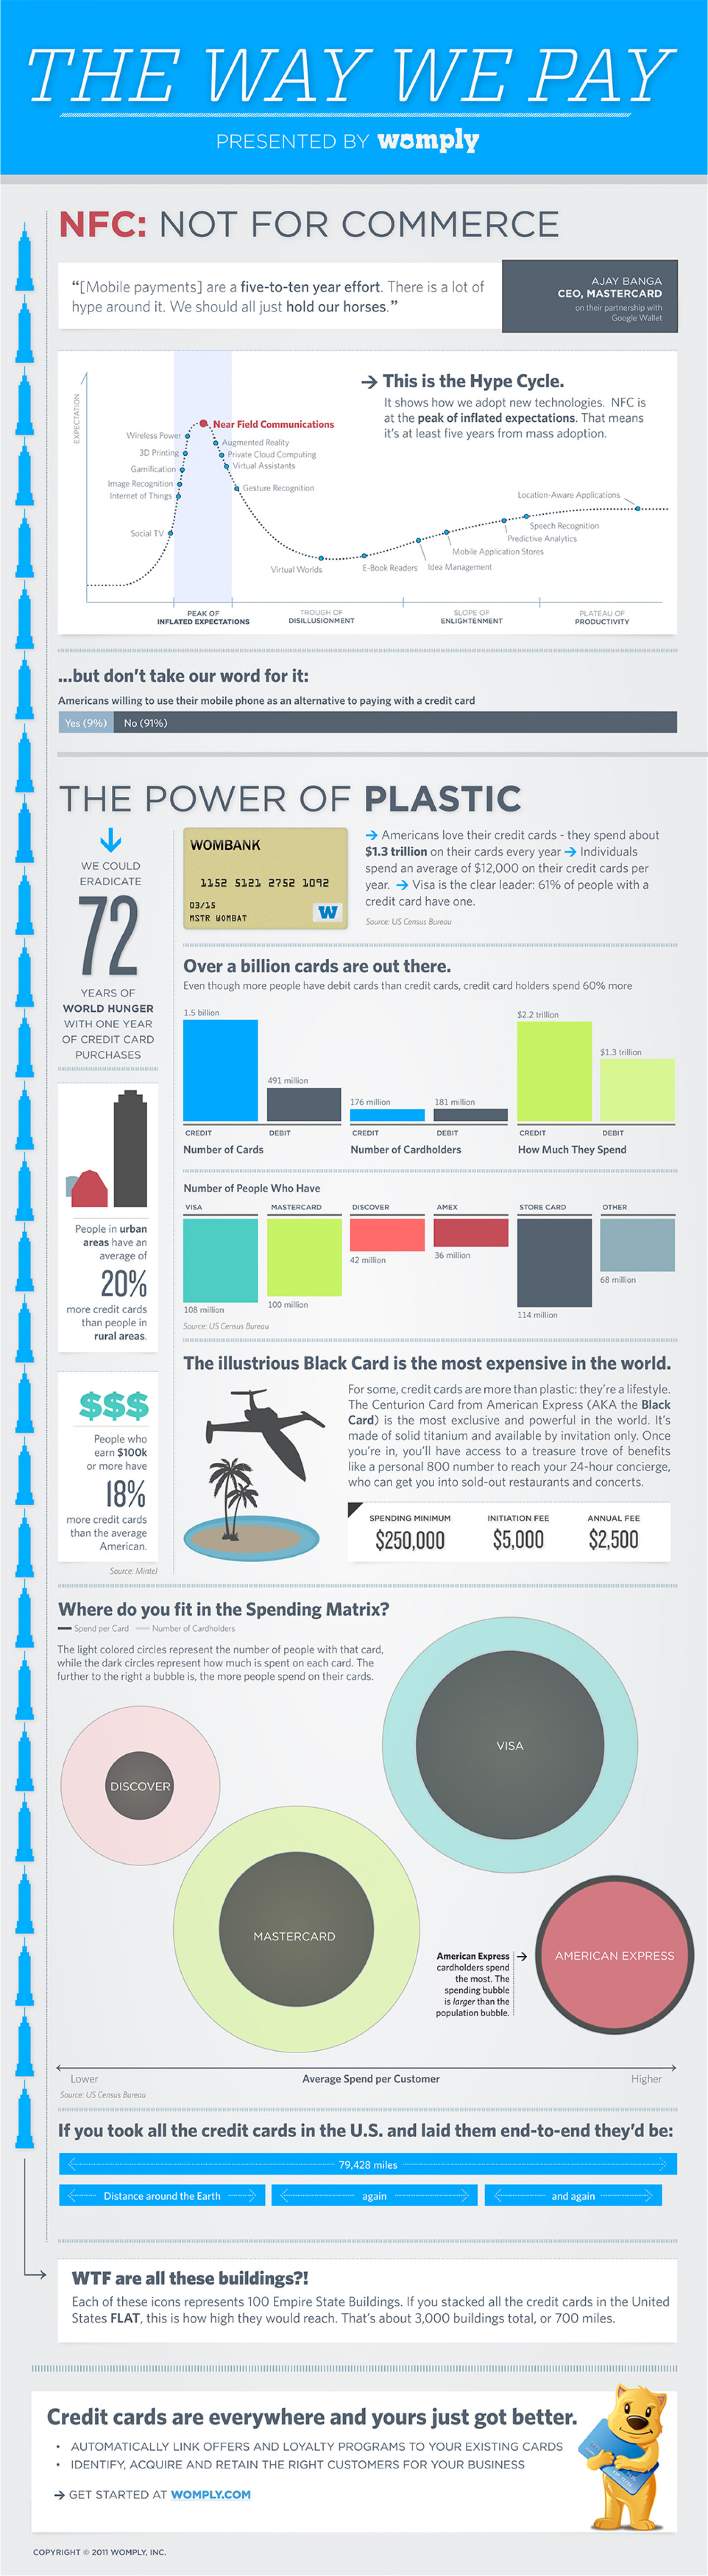 The Way We Pay Infographic